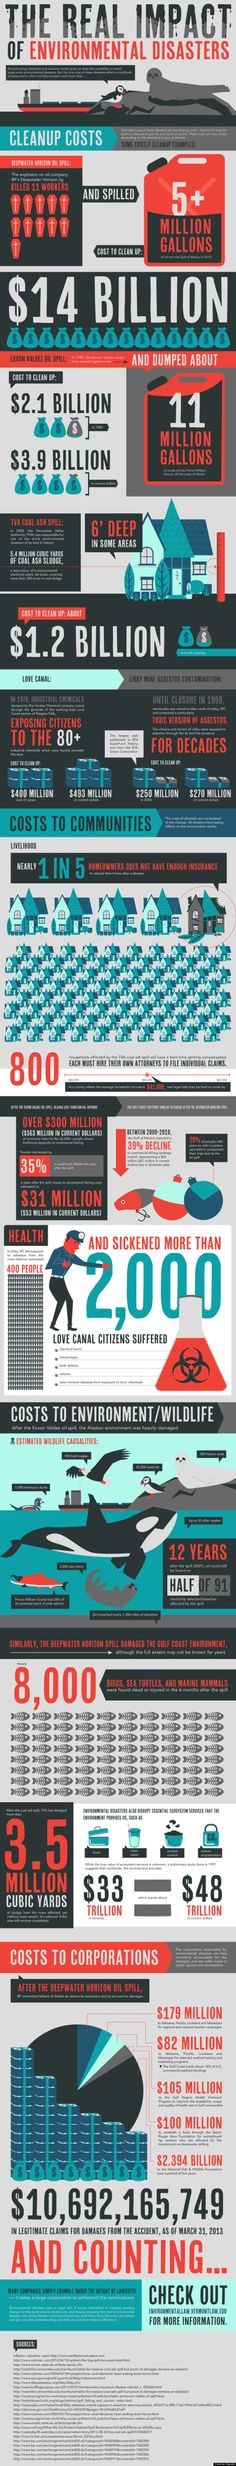 Environmental Disasters Prove They Don't Heal Themselves (INFOGRAPHIC)